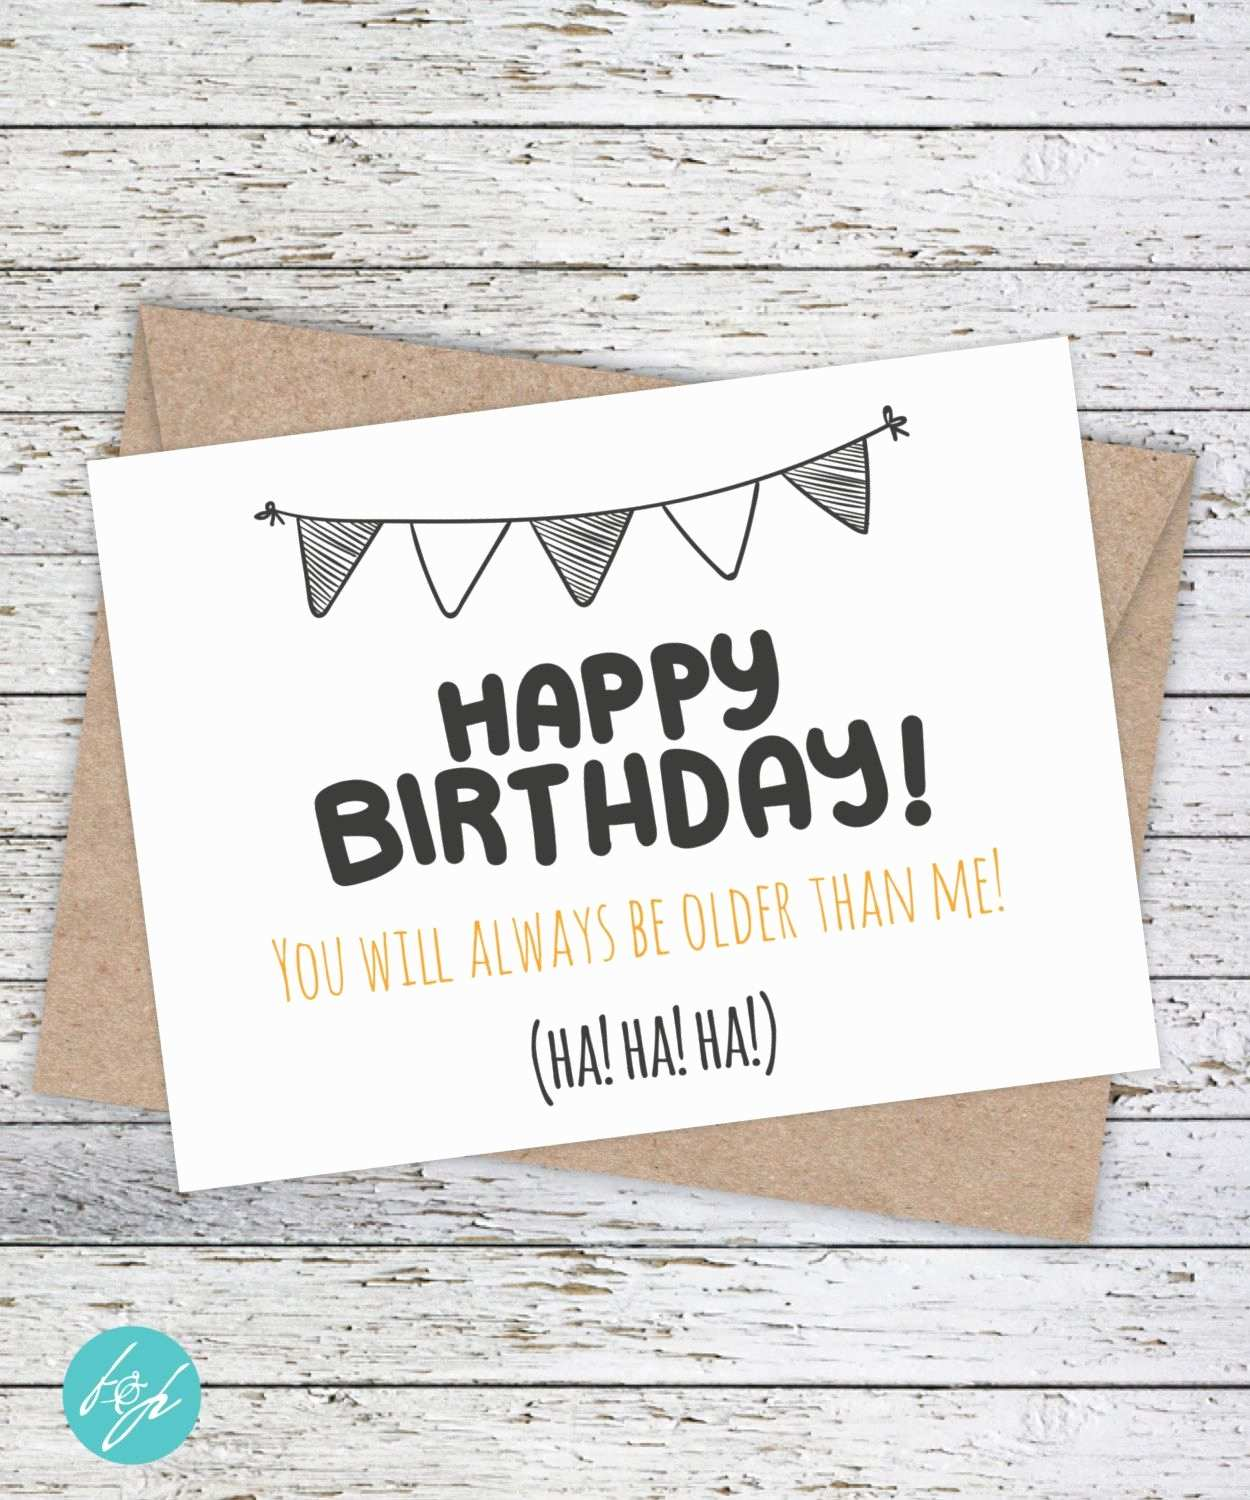 birthday card ideas for older sister ; happy-birthday-cards-for-brother-lovely-birthday-card-funny-older-birthday-card-older-sister-card-big-of-happy-birthday-cards-for-brother